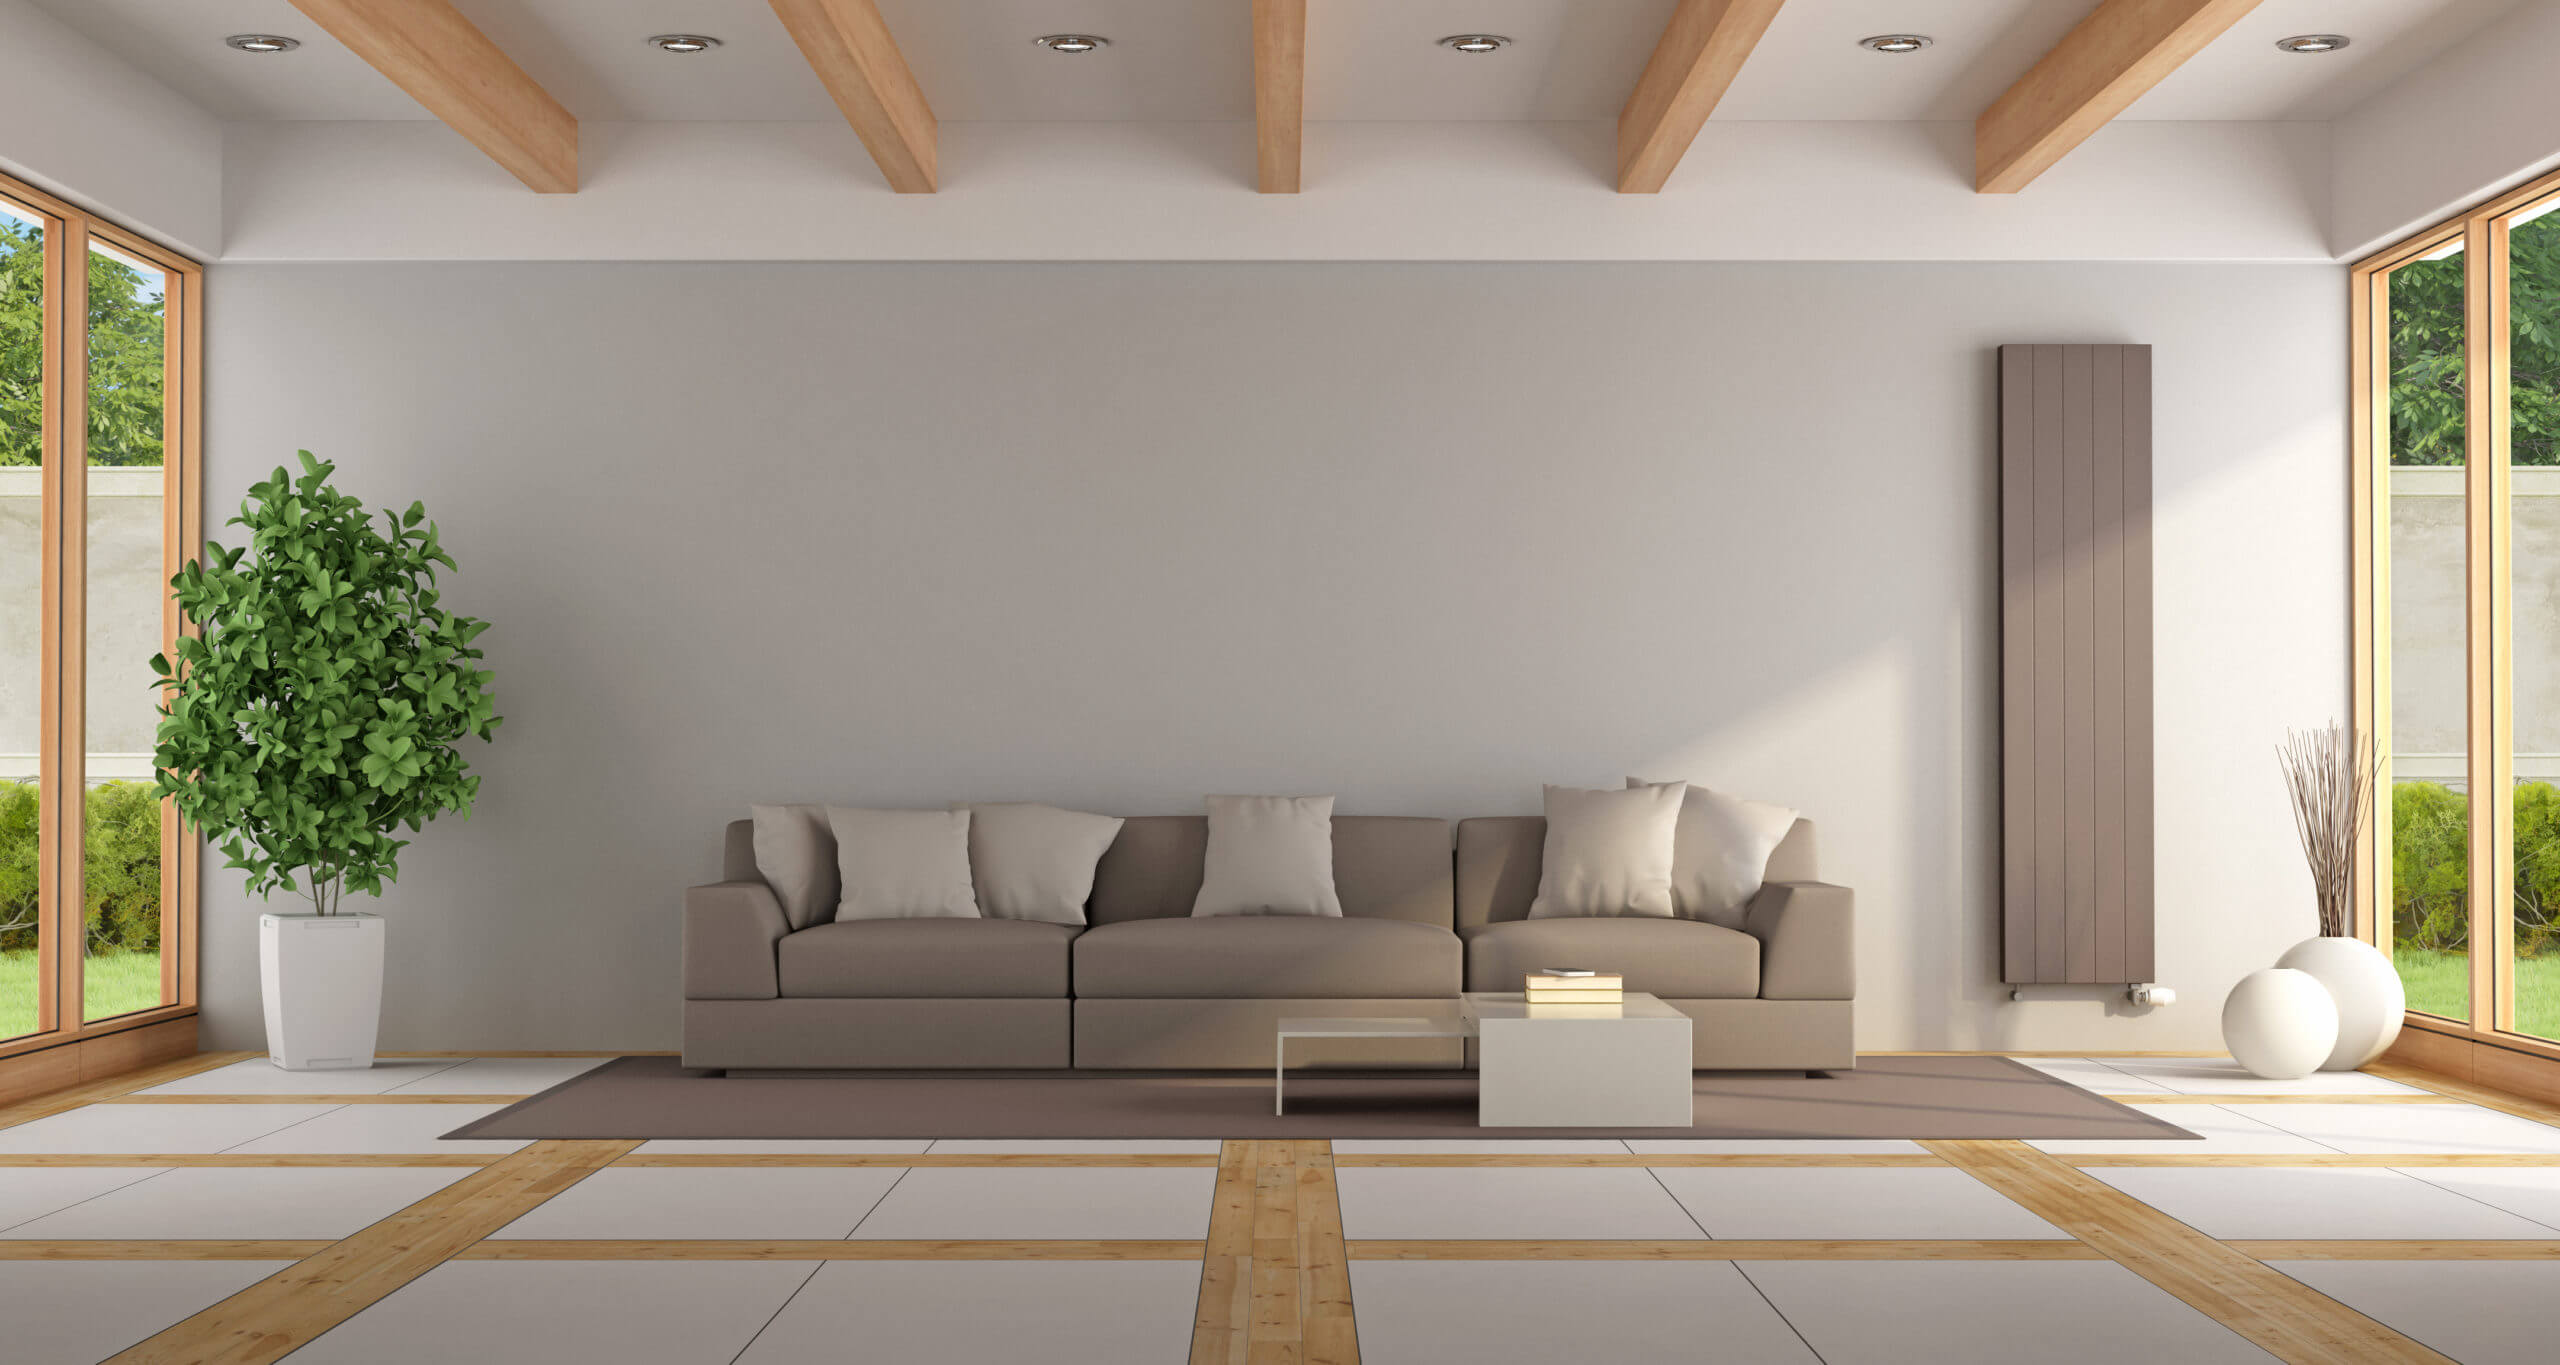 Contemporary lounge with brown sofa,windows and elegant floor - 3d rendering